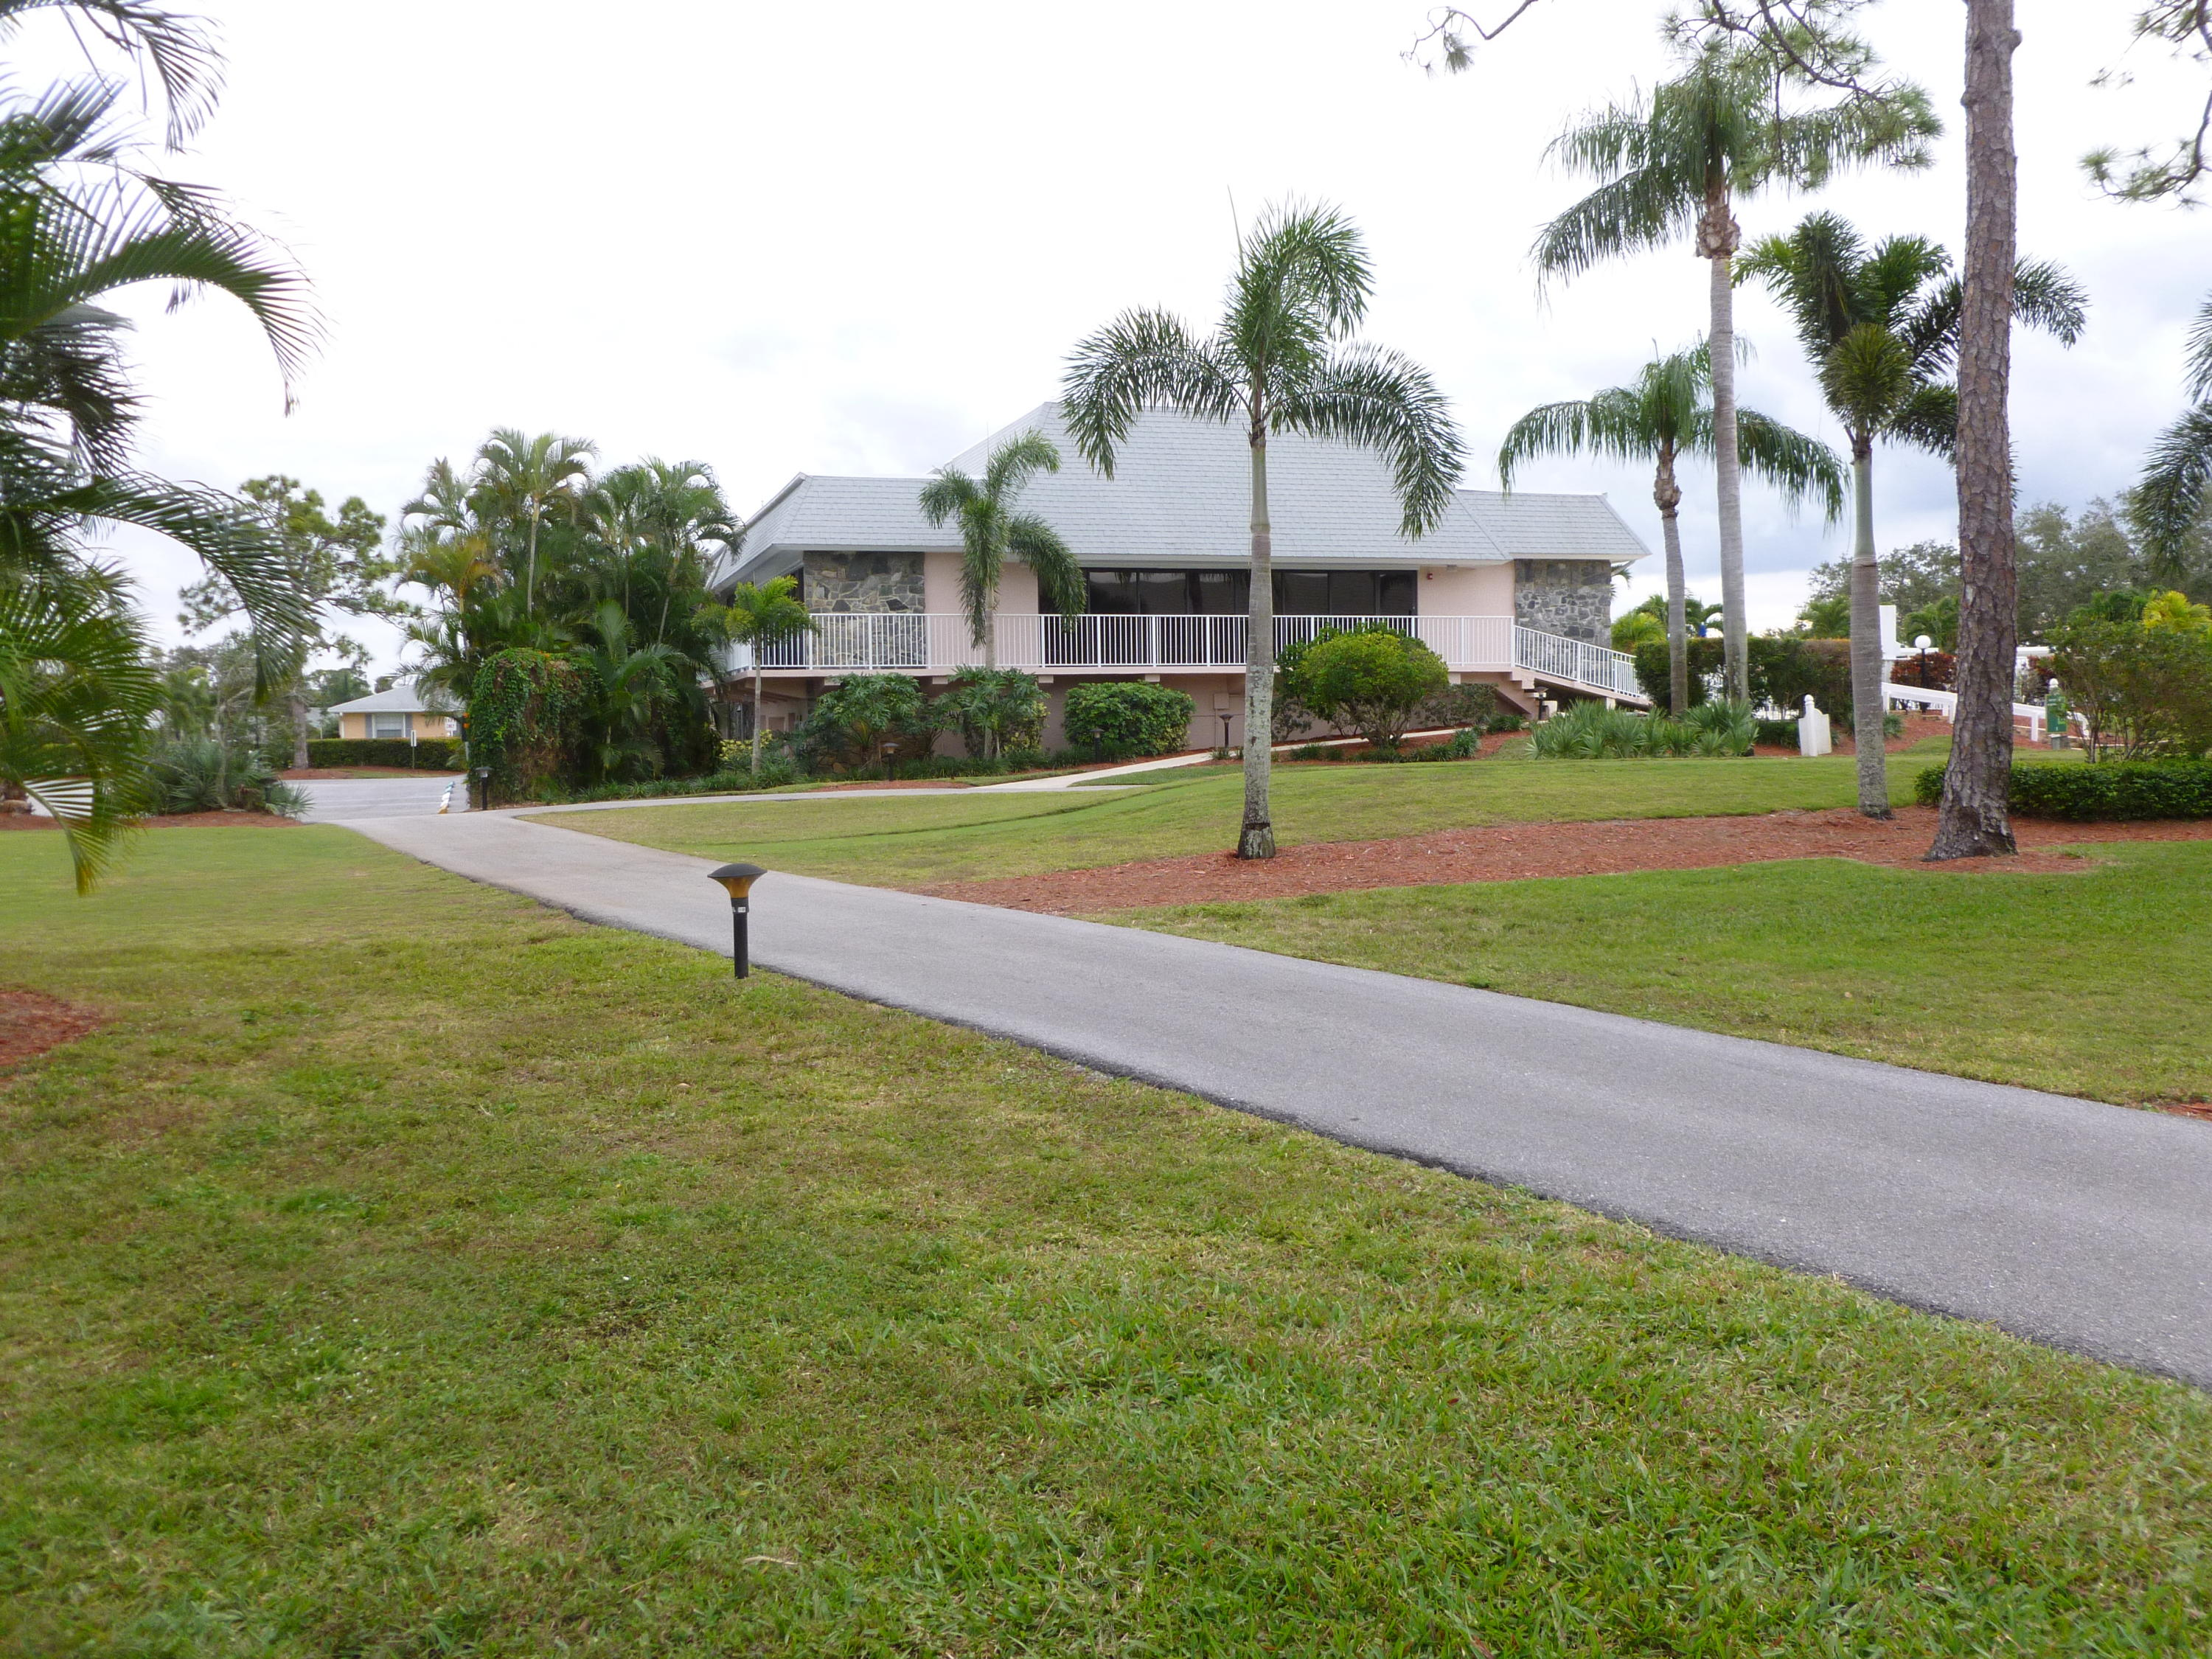 18081 Country Club Drive #260, Tequesta, Florida 33469, 2 Bedrooms Bedrooms, ,2 BathroomsBathrooms,F,Condominium,Country Club,RX-10400048